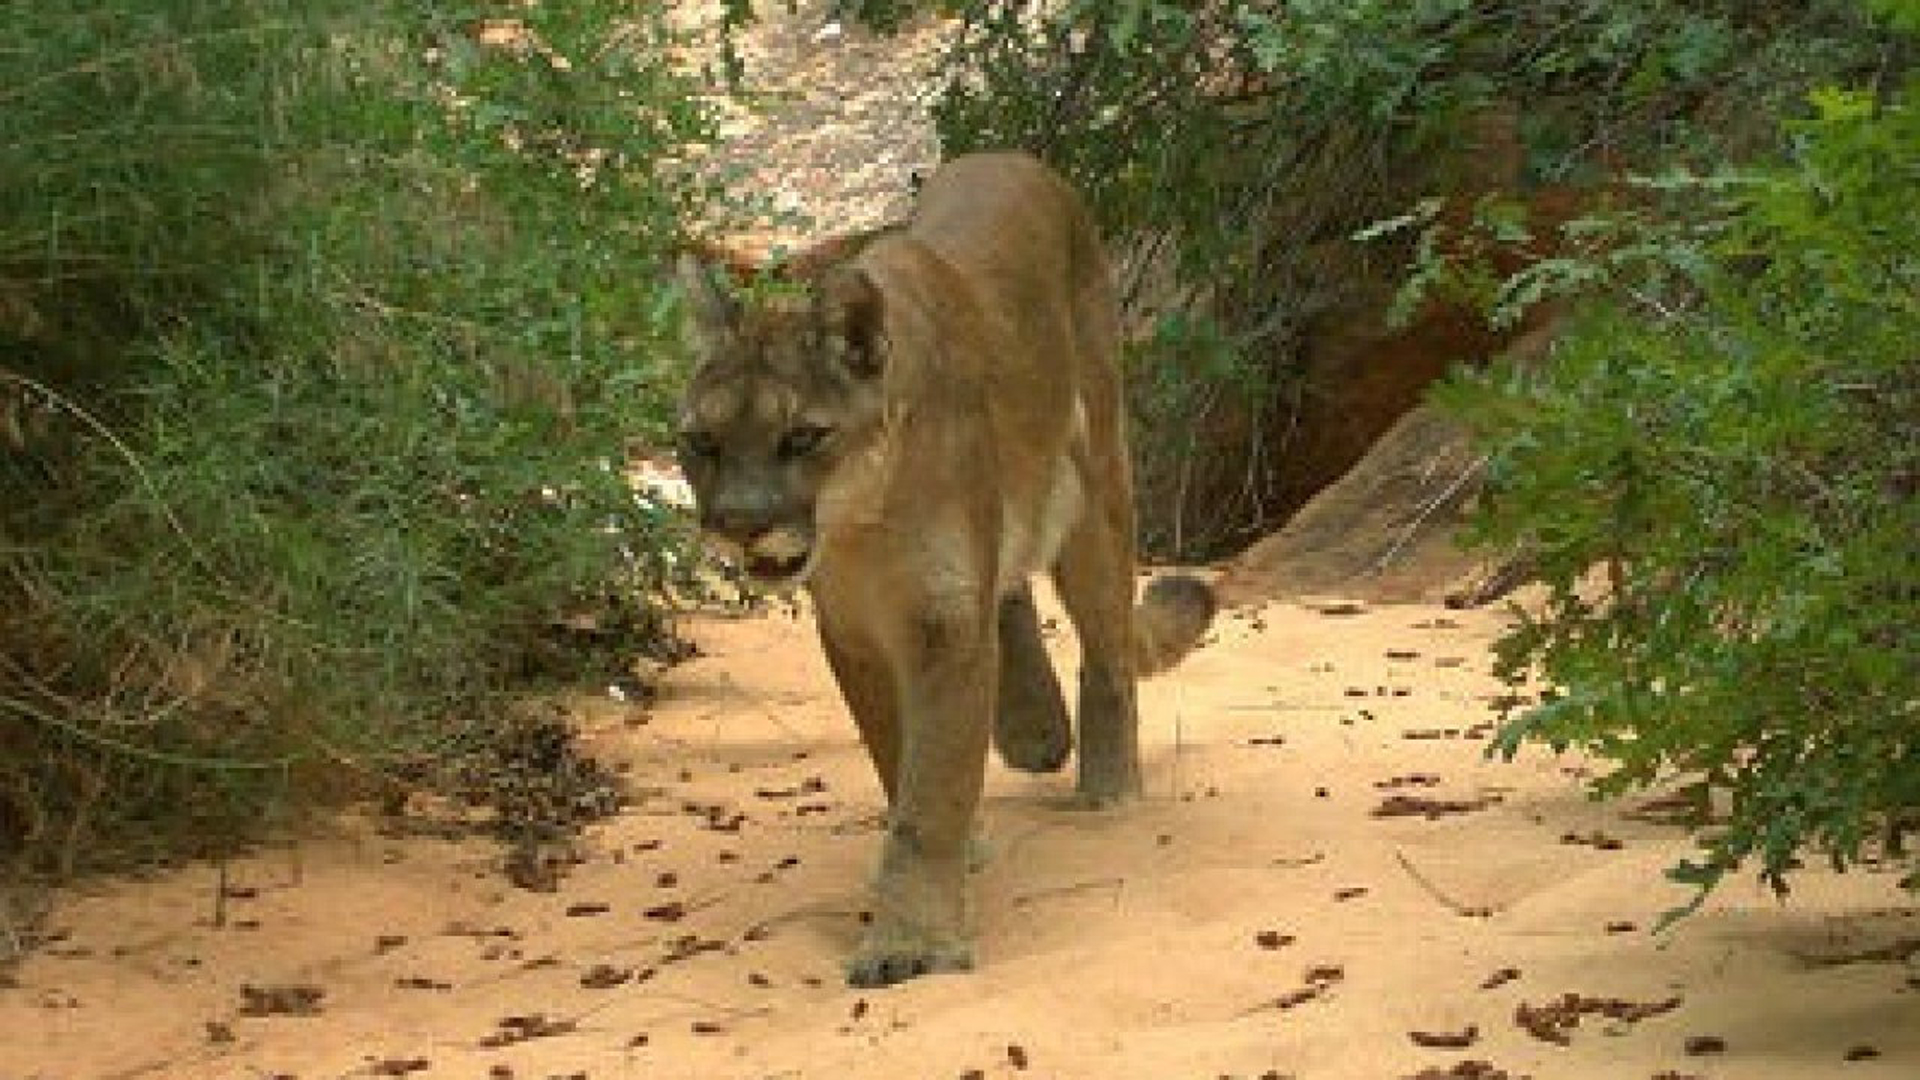 A mountain lion is seen in a file photo from the National Park Service and distributed by CNN.